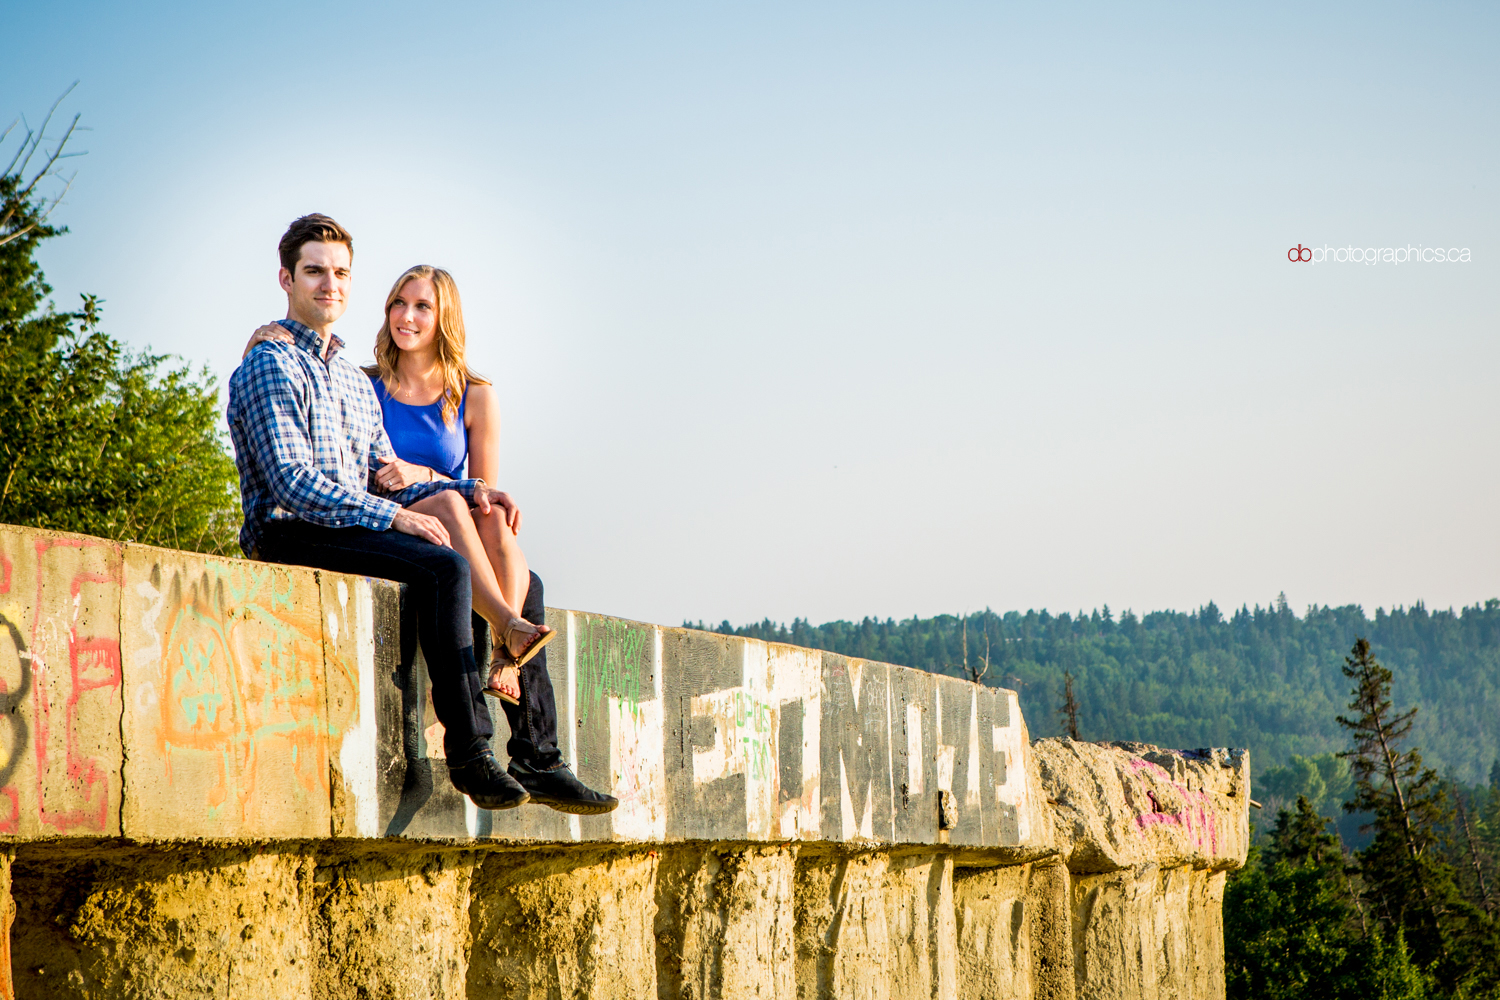 Ben & Melissa - Engagement Session - 20140713 - 0018.jpg